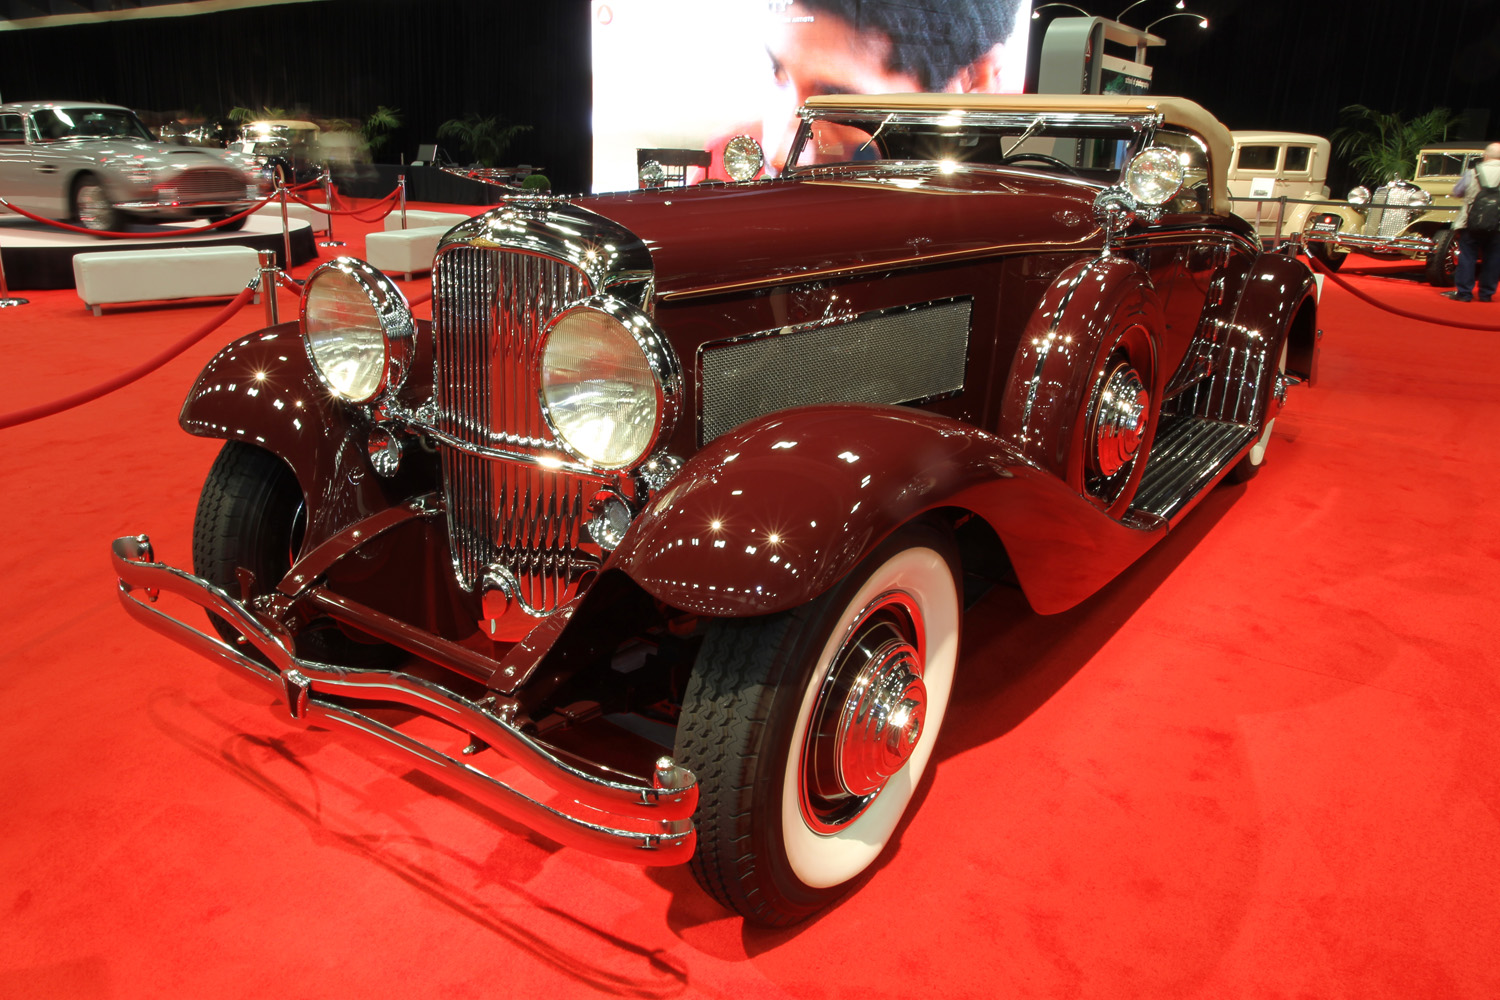 1935 Duesenberg SJ Walker-LaGrande Convertible Coupe